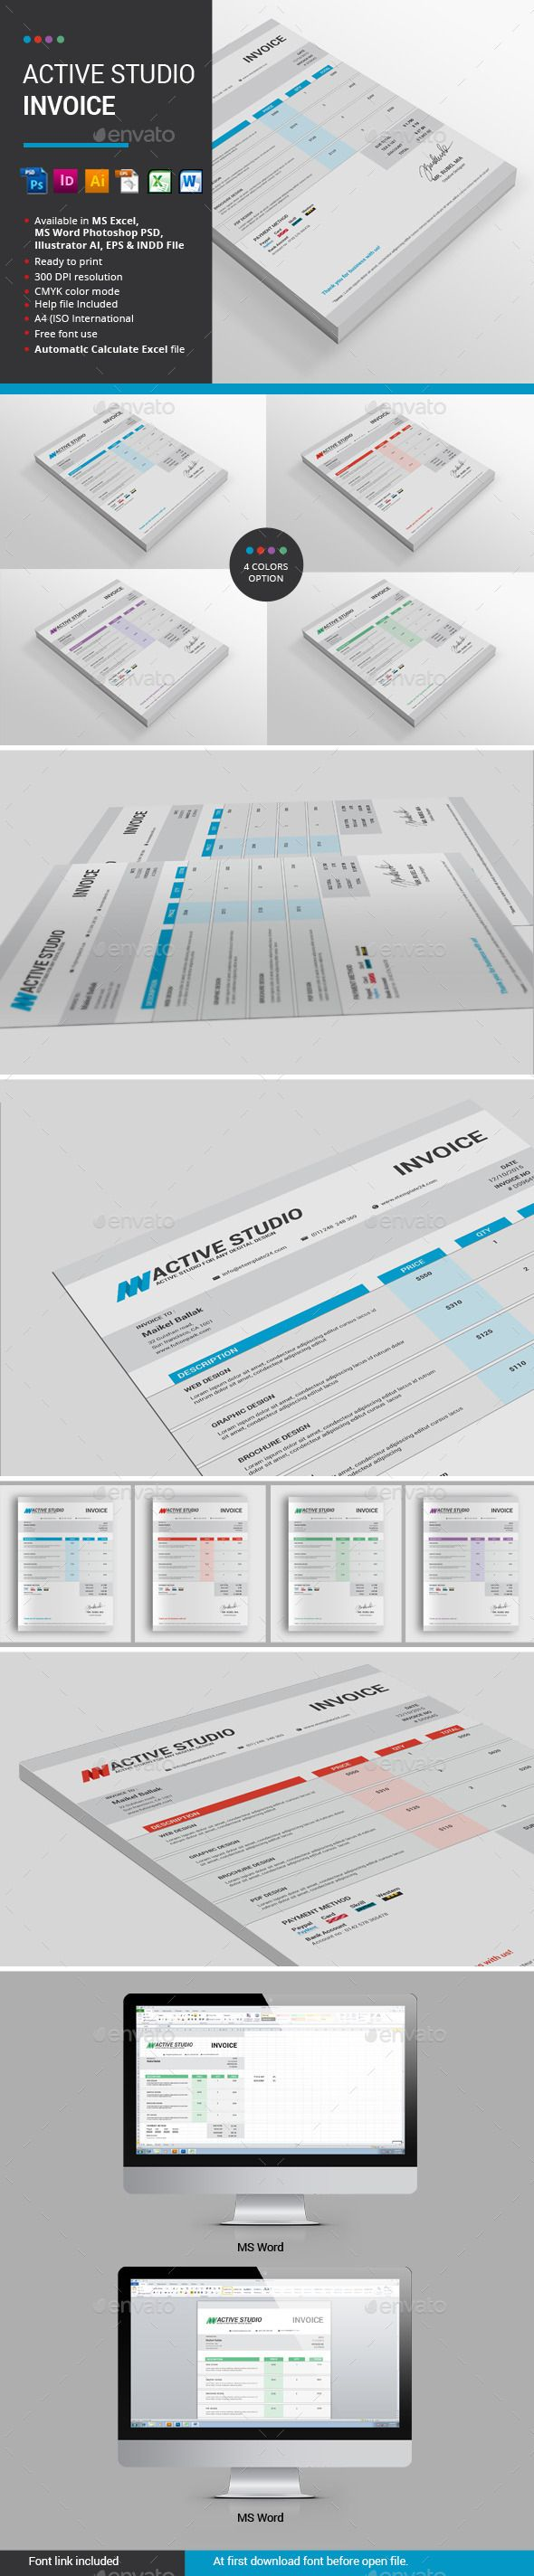 How To Create An Invoice On Excel 16 Best Excel Templates Images On Pinterest  Stationery Templates .